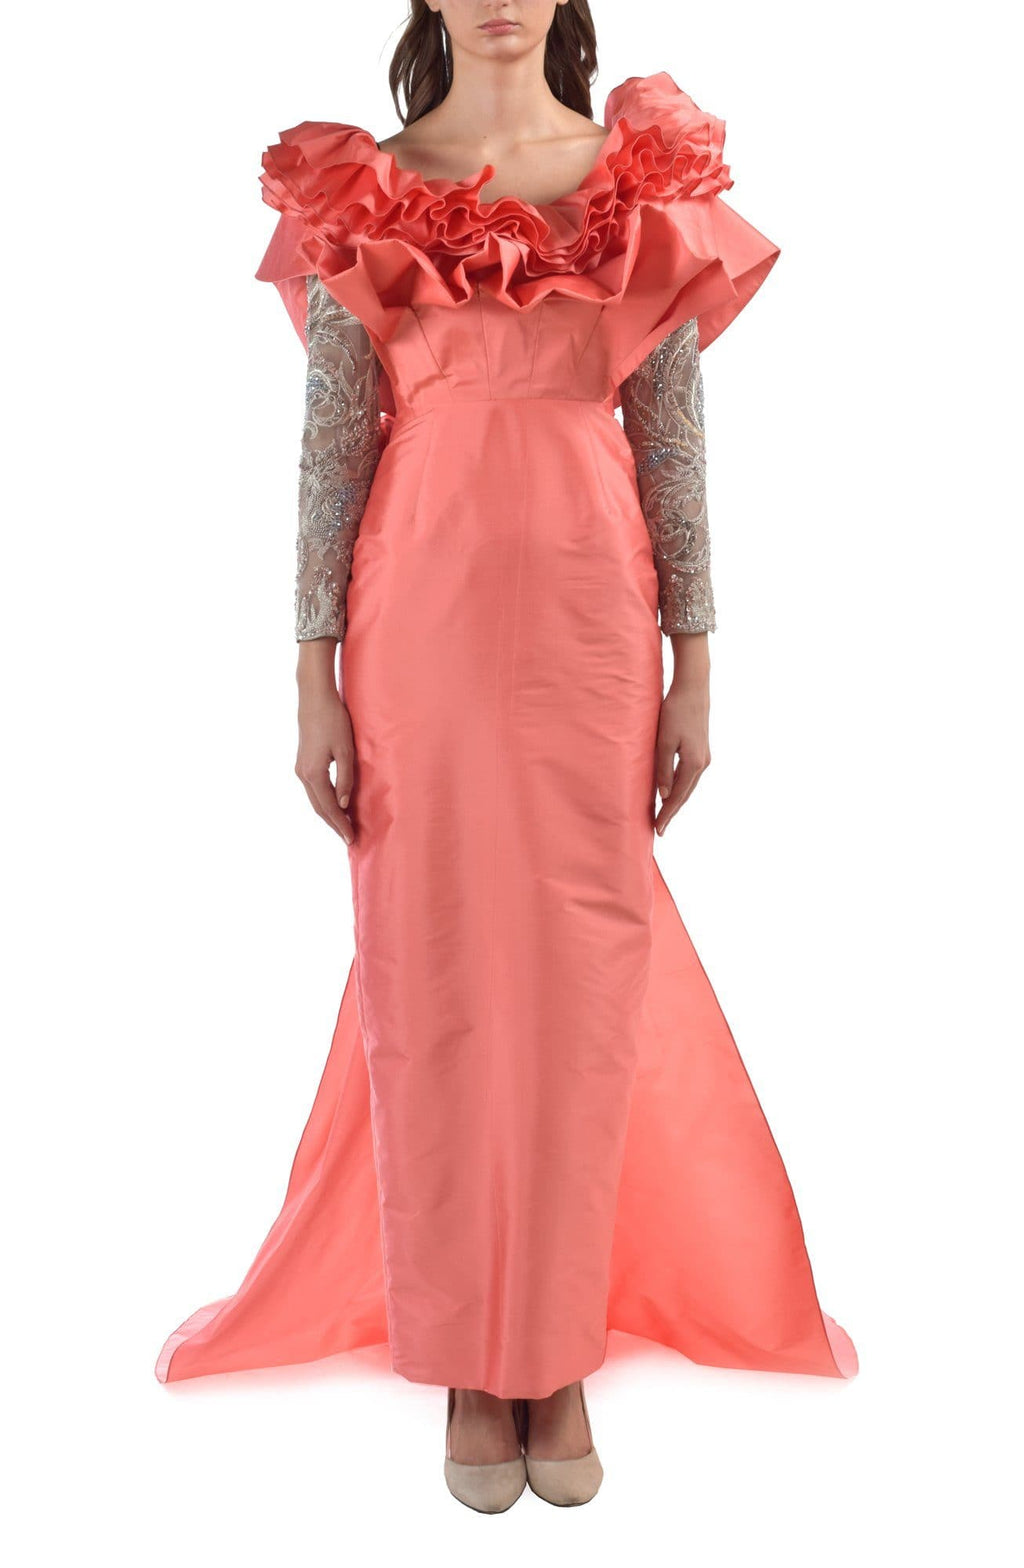 Rainforest Rubberband Pink Emboridered Dress - BYTRIBUTE